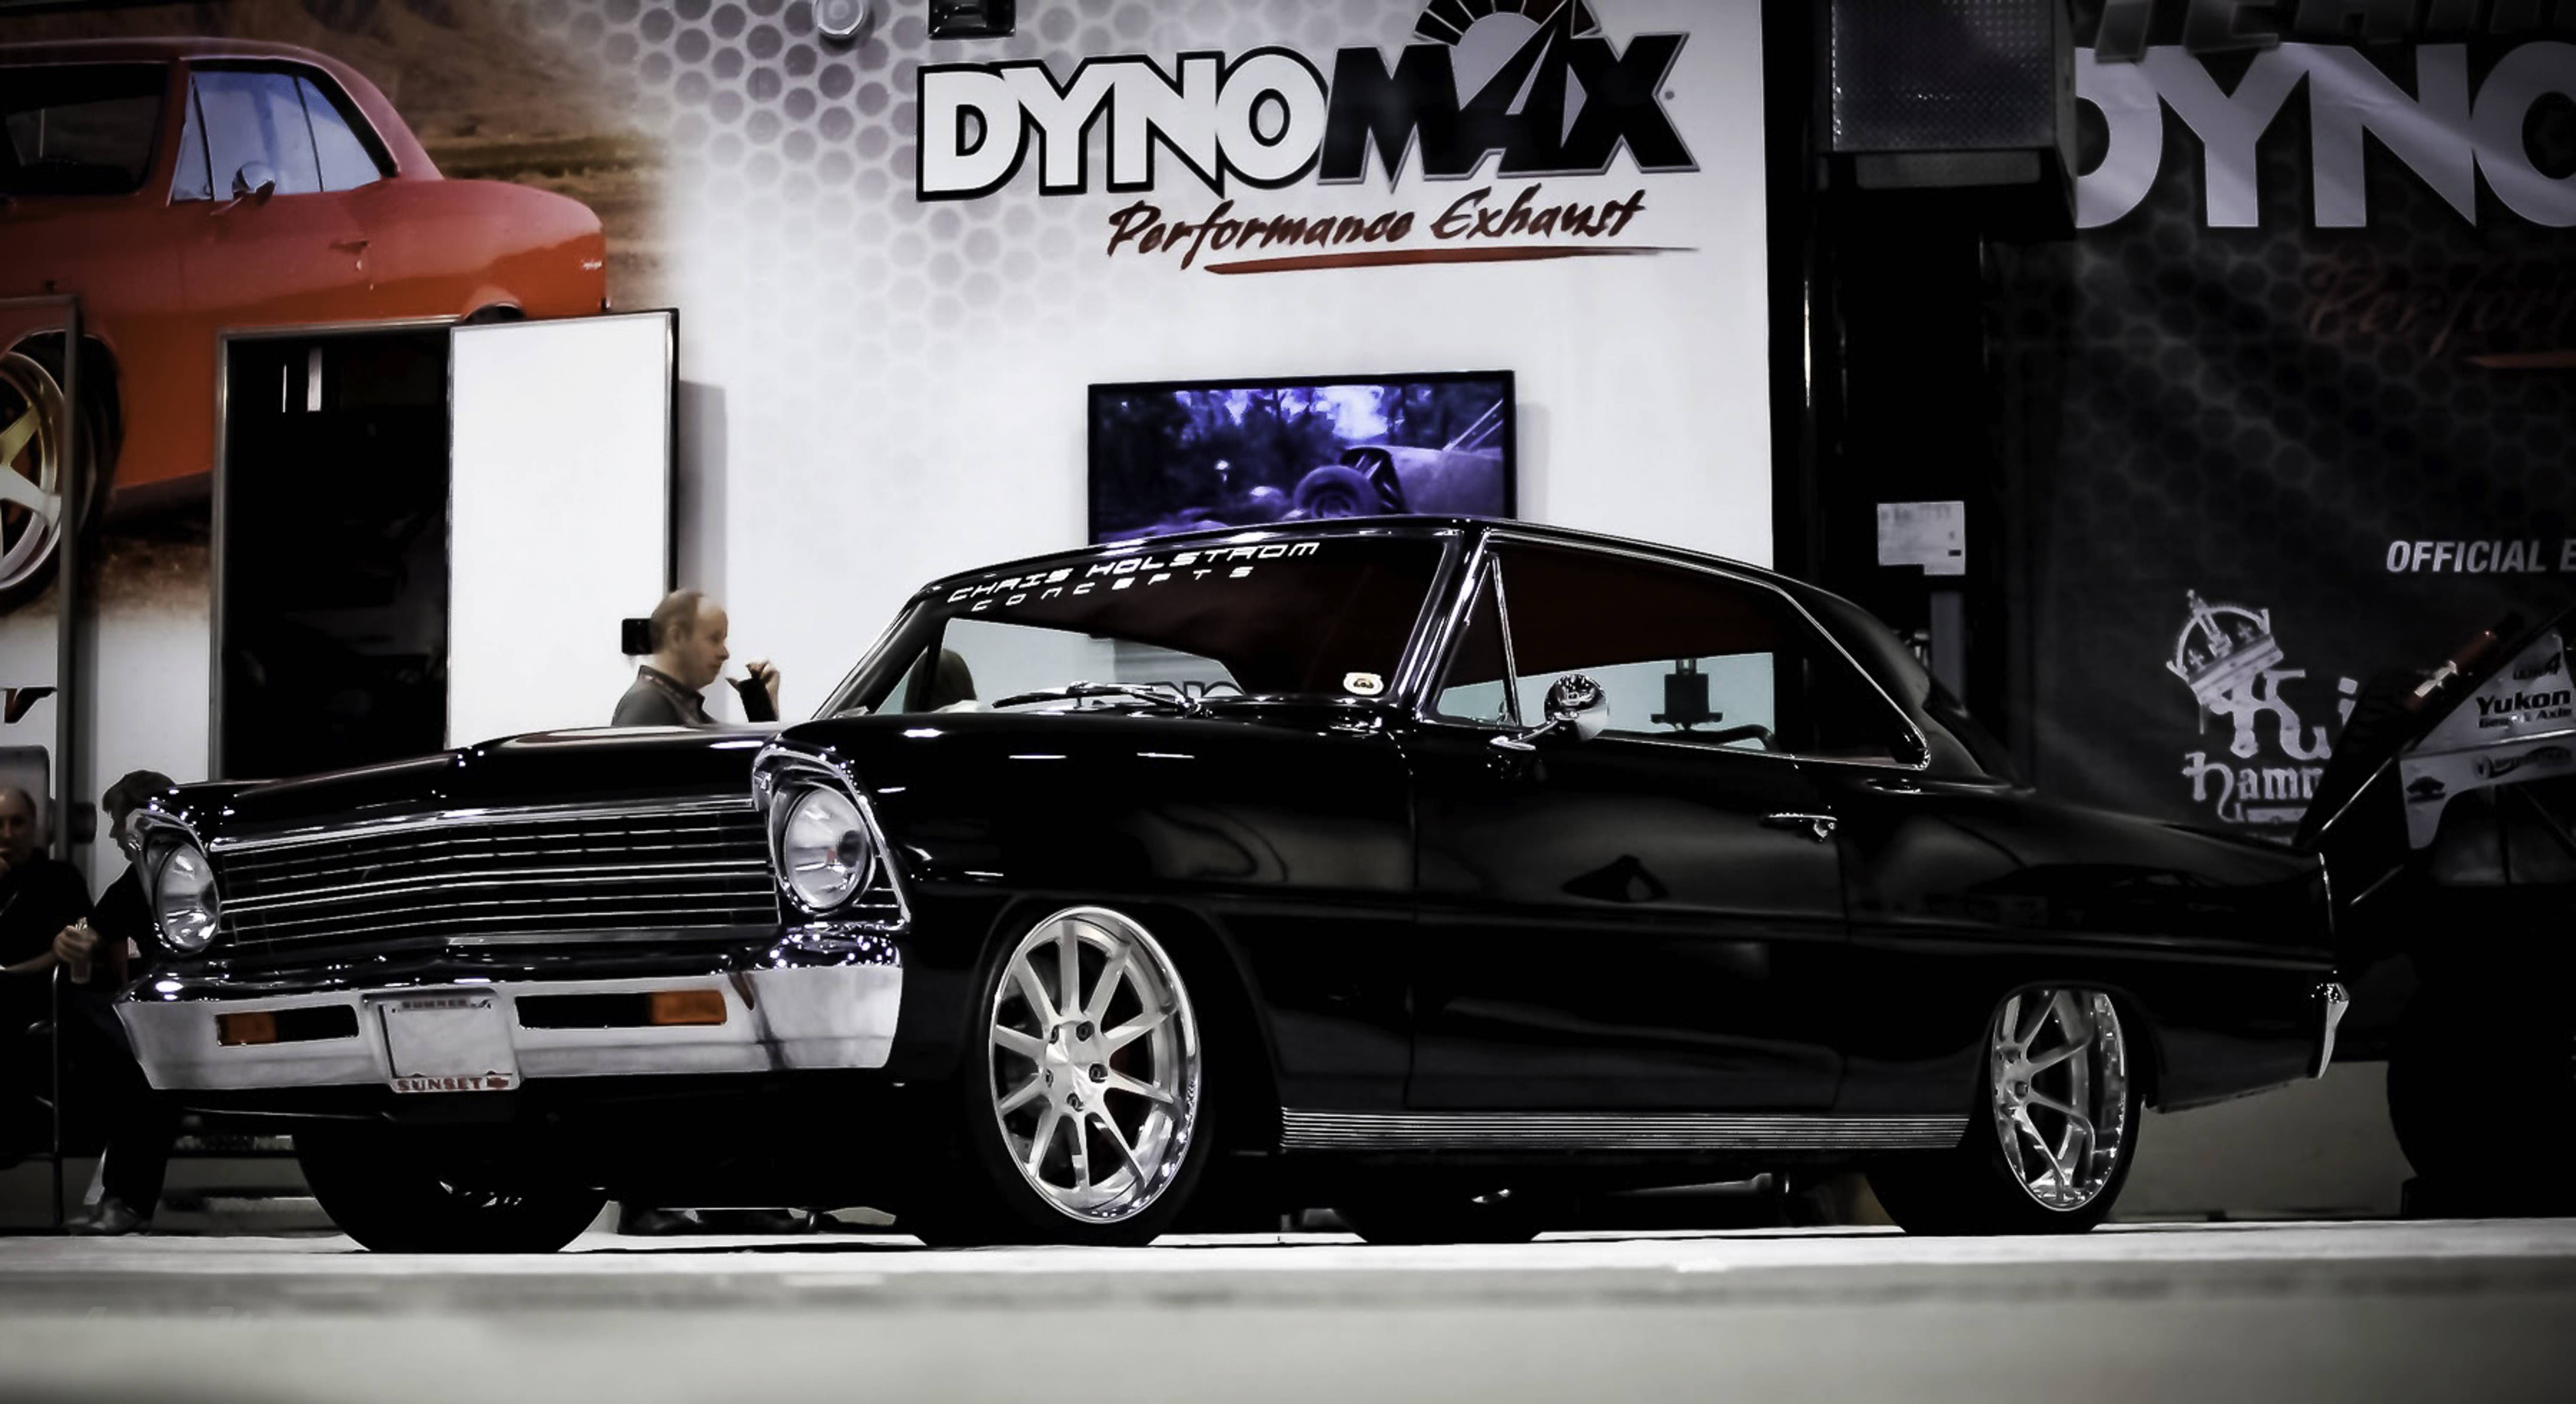 Chevrolet Nova Best in show at 2013 SEMA. Will be on next